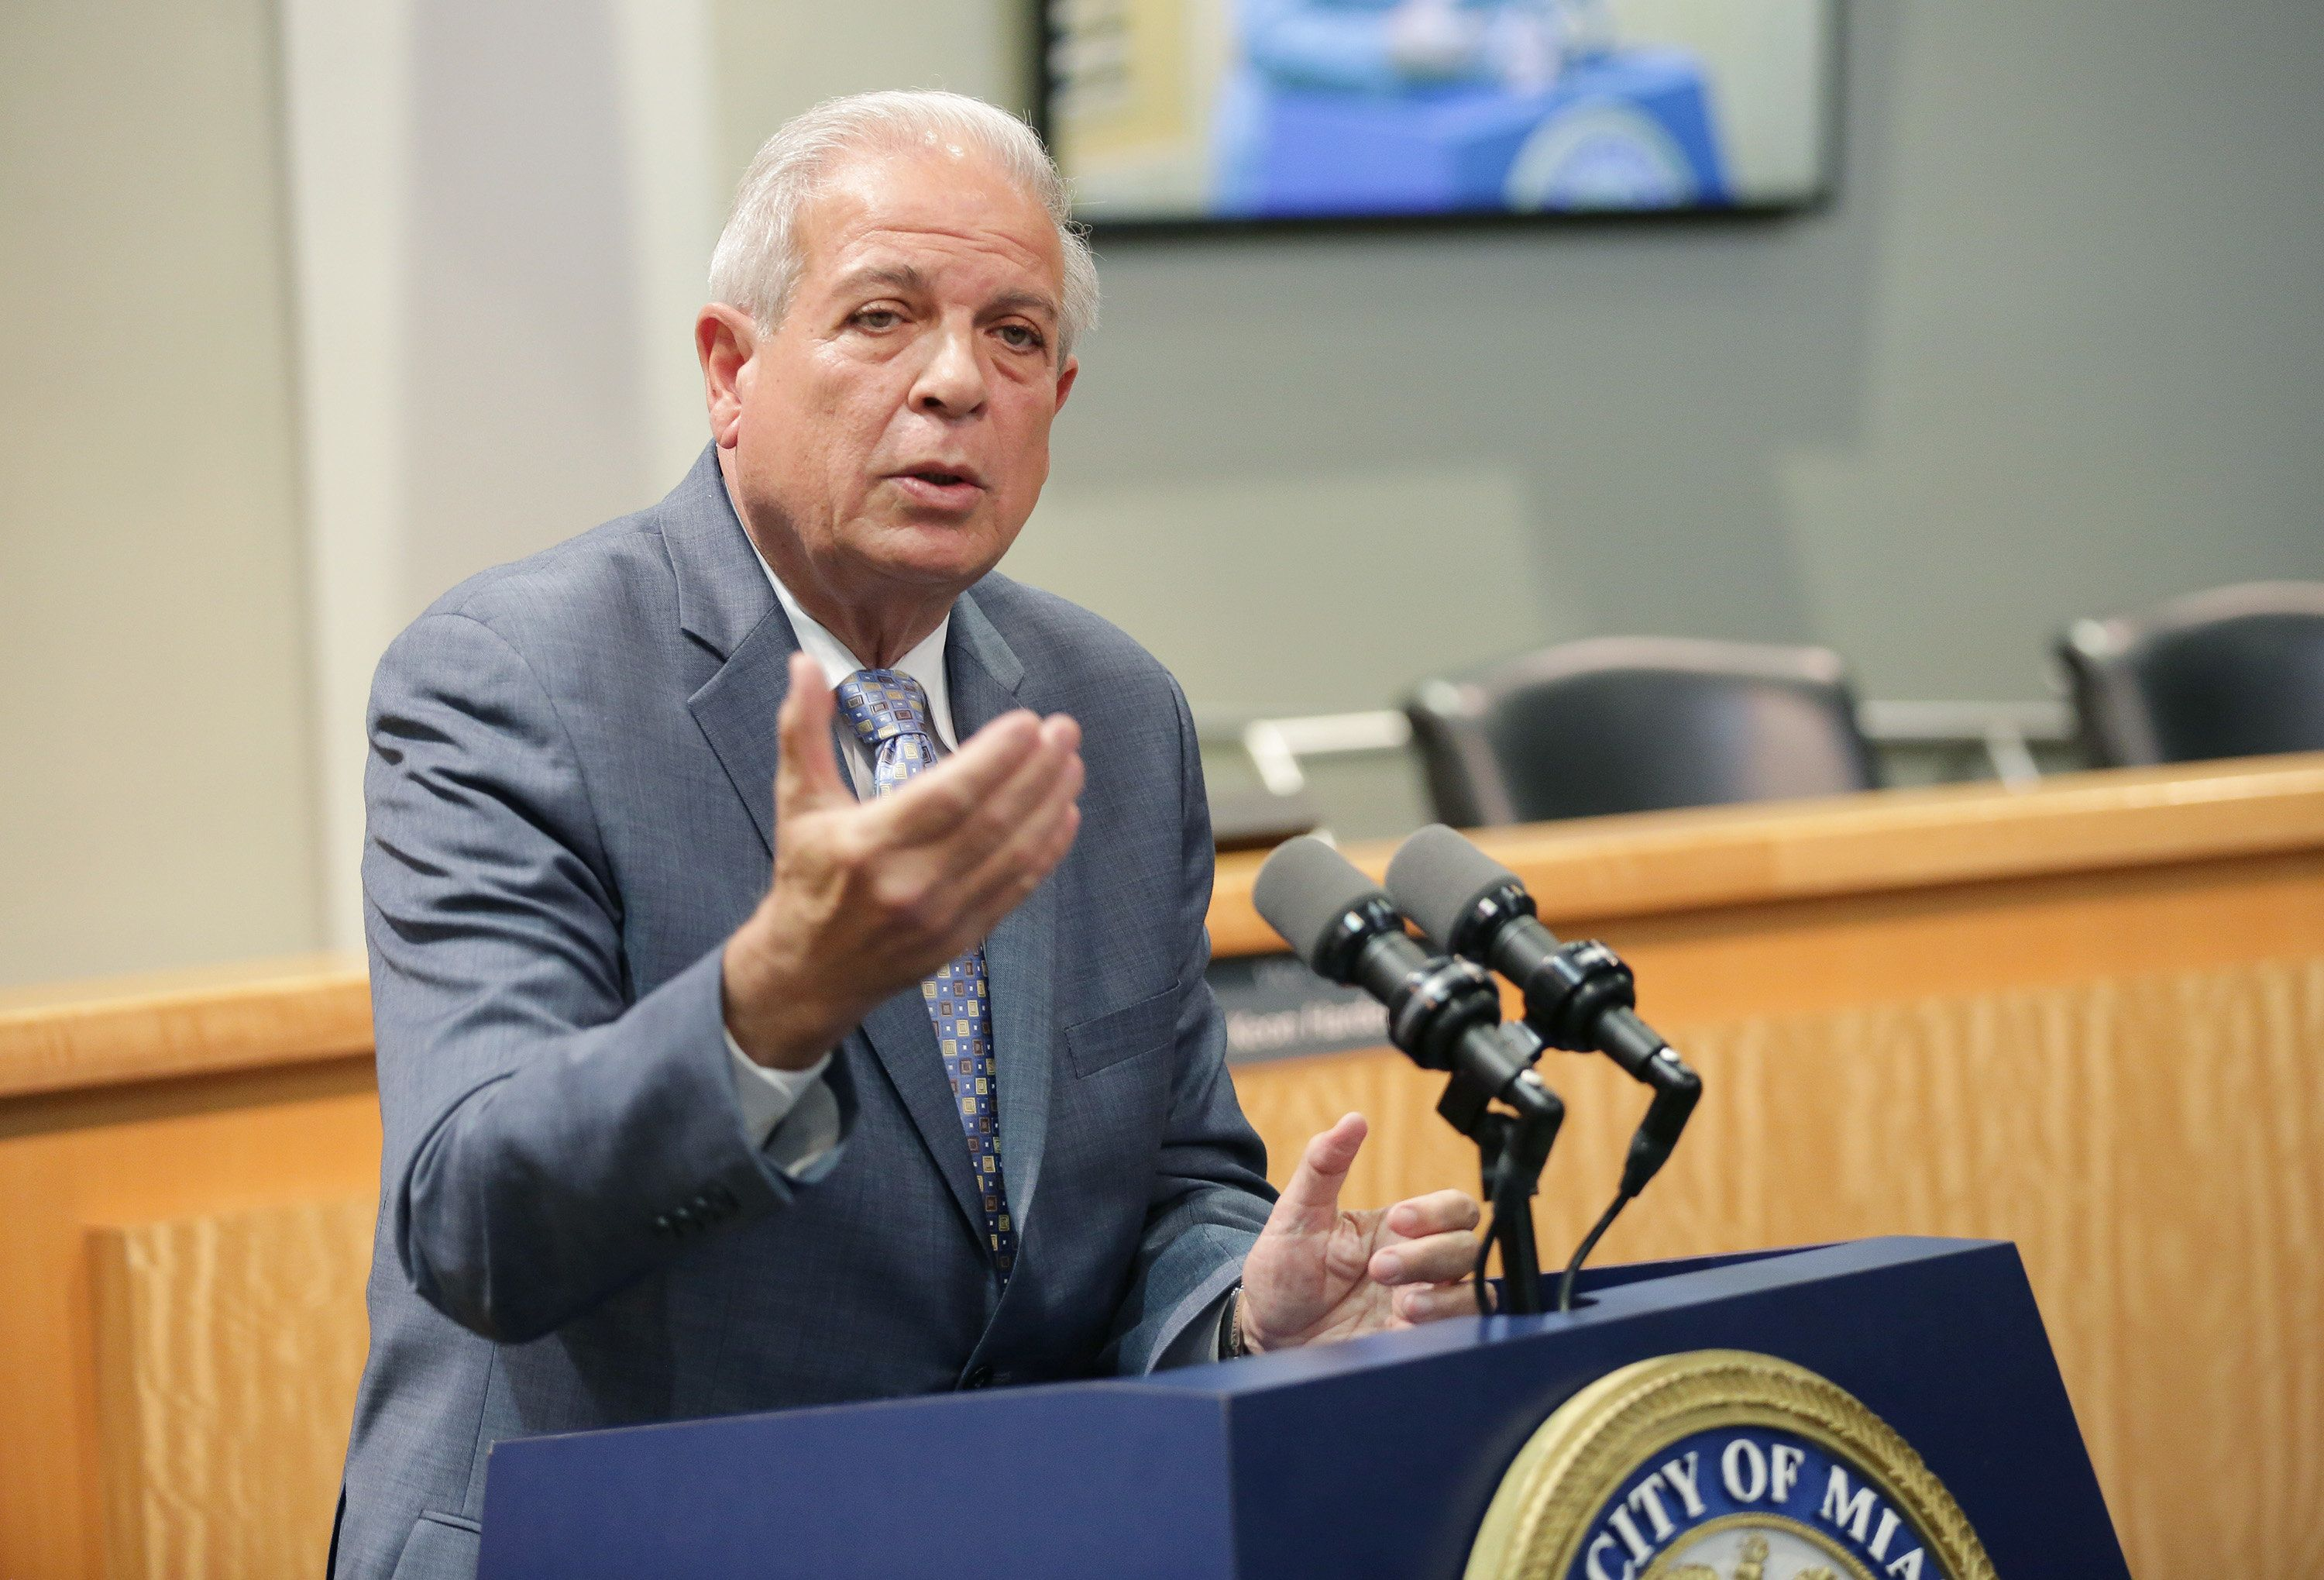 Miami Mayor Tomas Regalado is pictured in 2014.